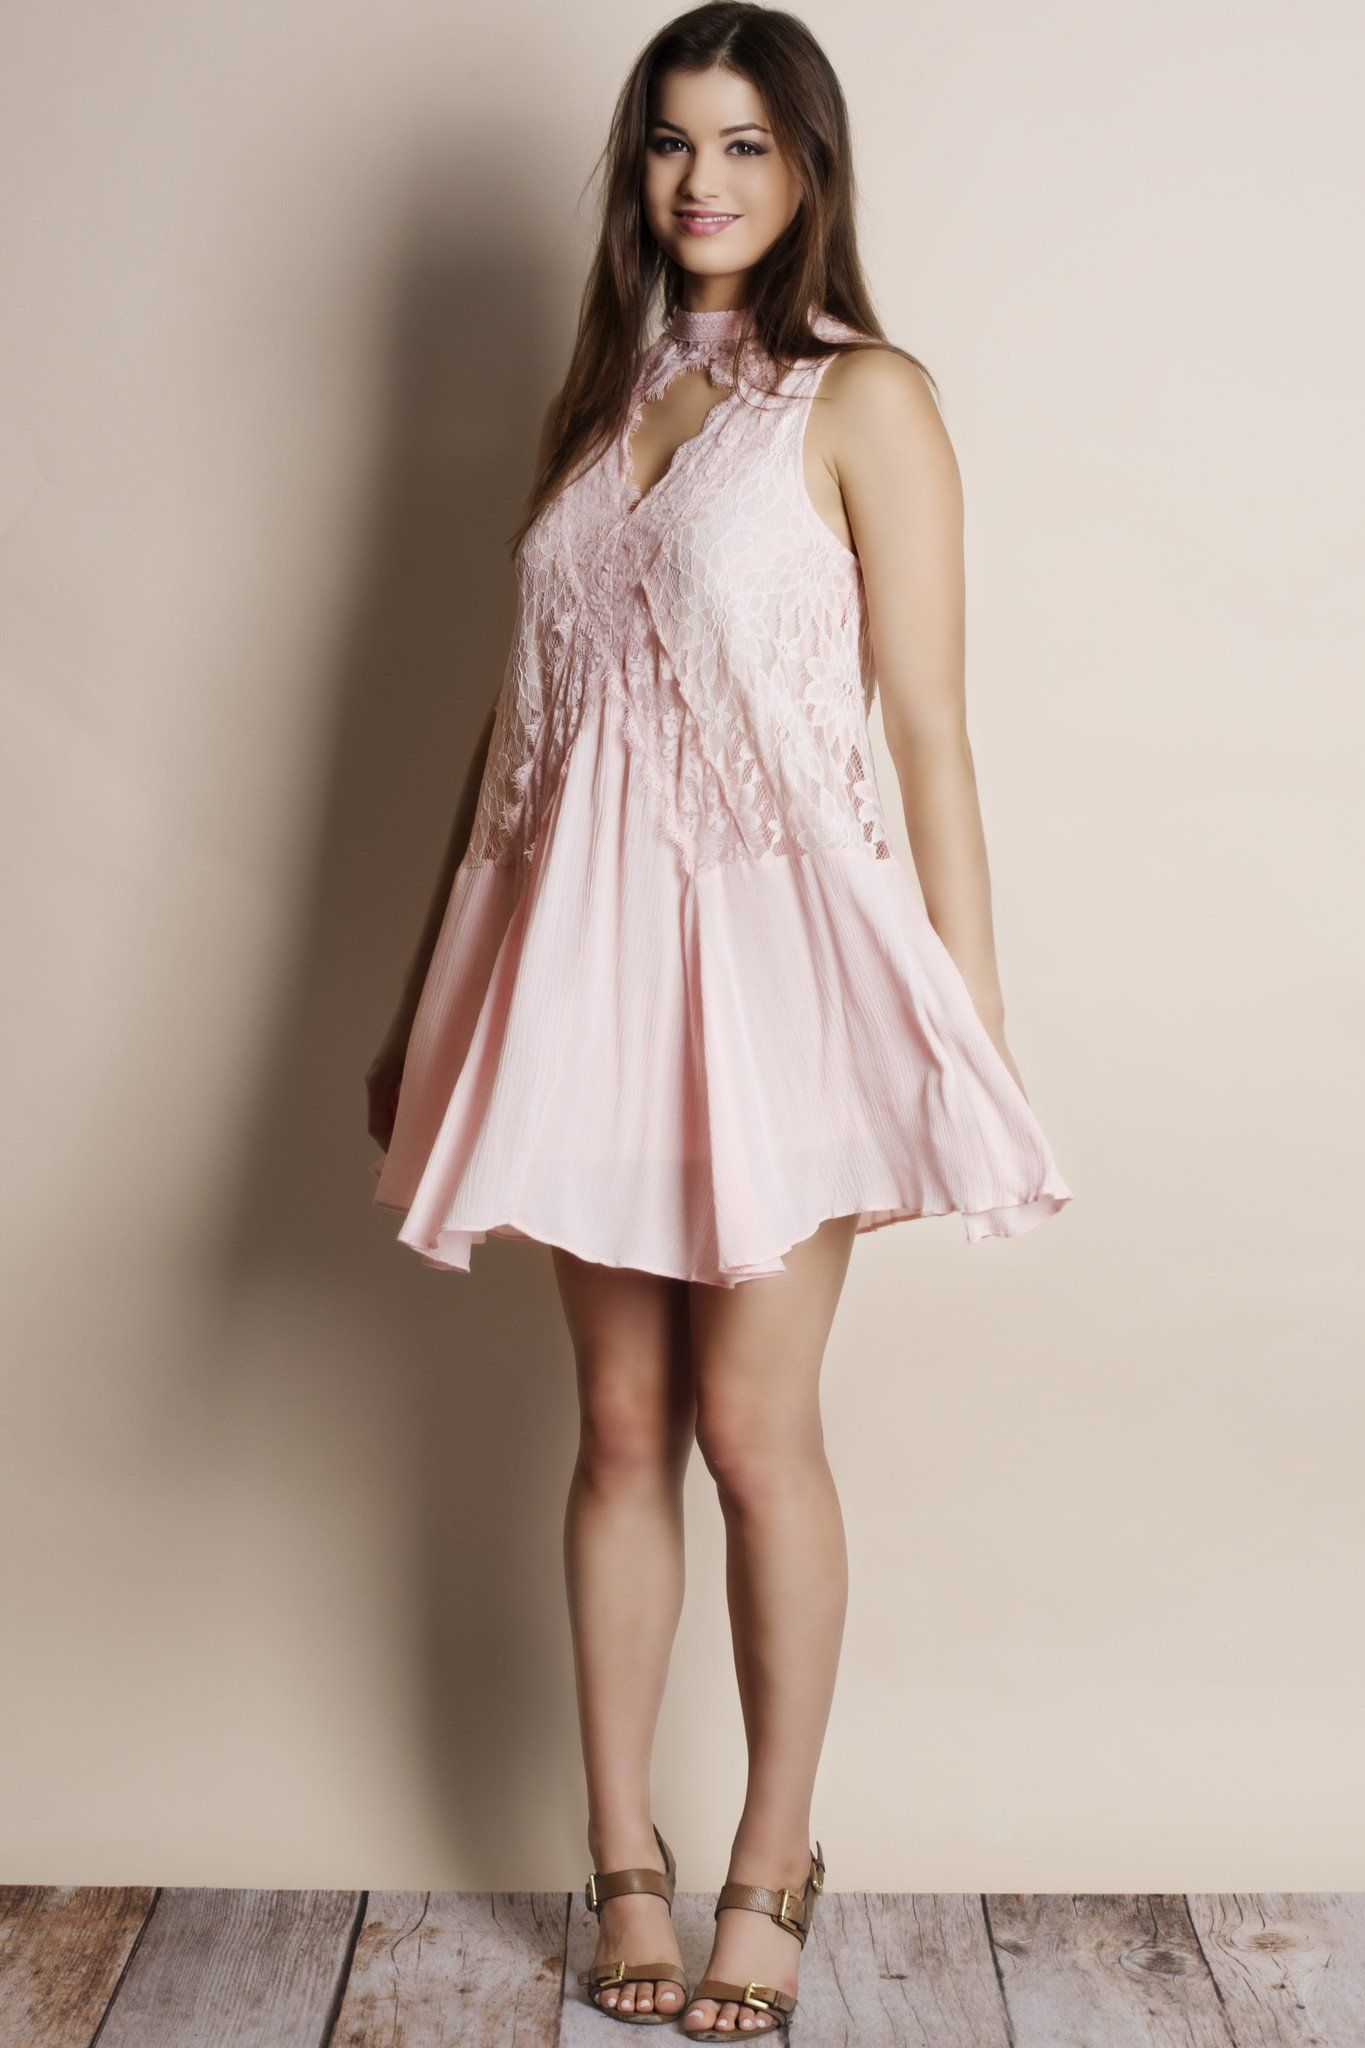 Pink cut out dress  Curfew Lace Cut Out Dress  Products